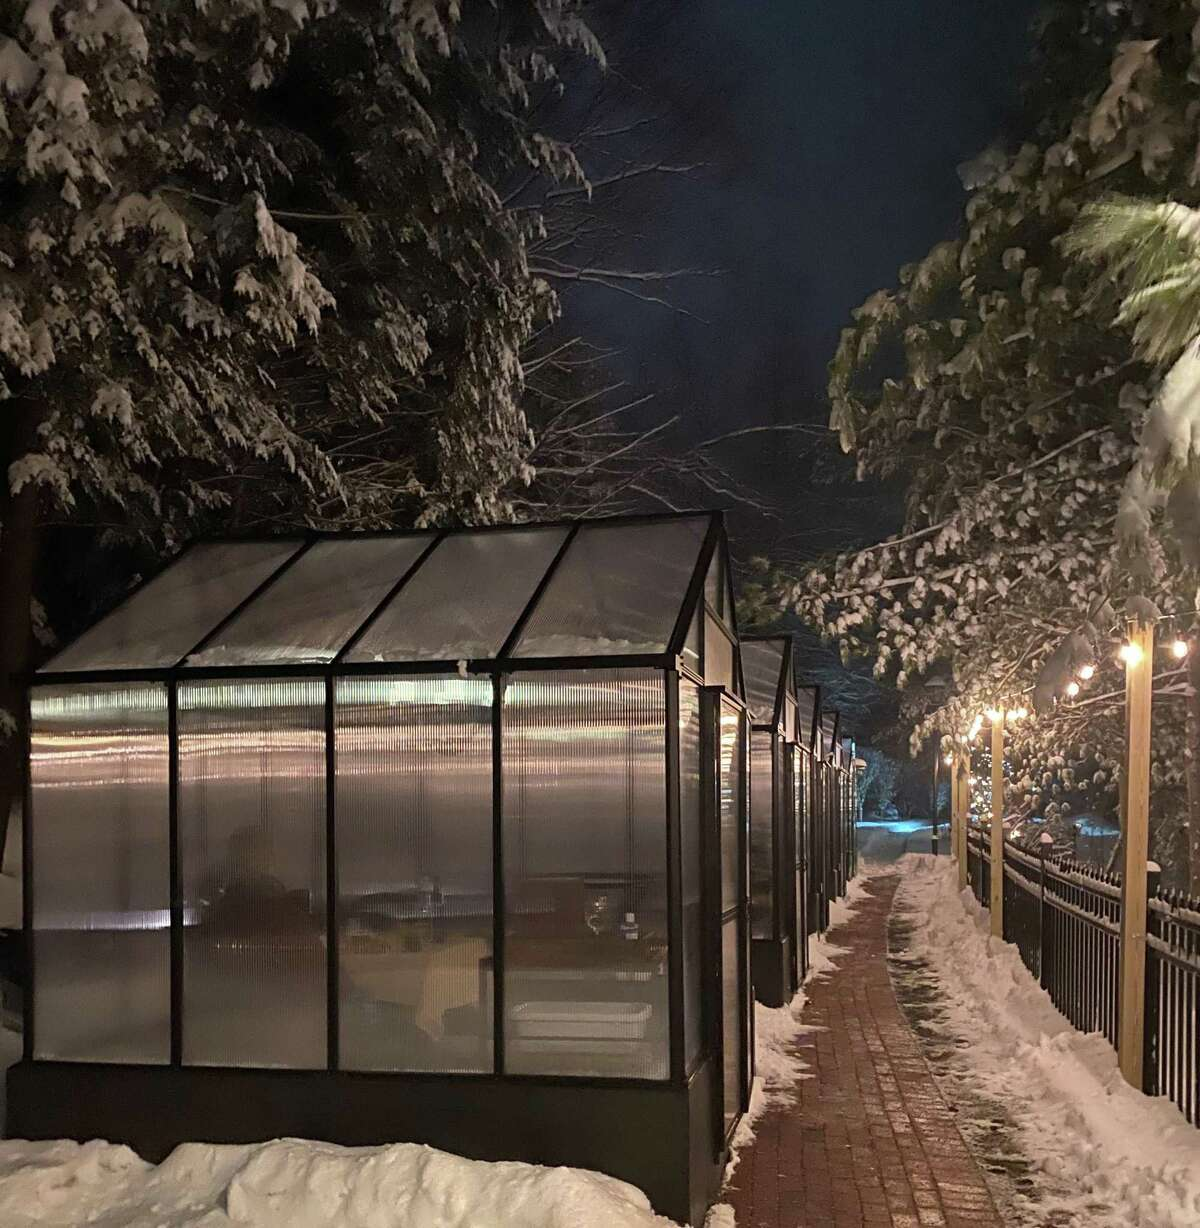 Greenhouses are set up outside Millwright's Restaurant in Simsbury.